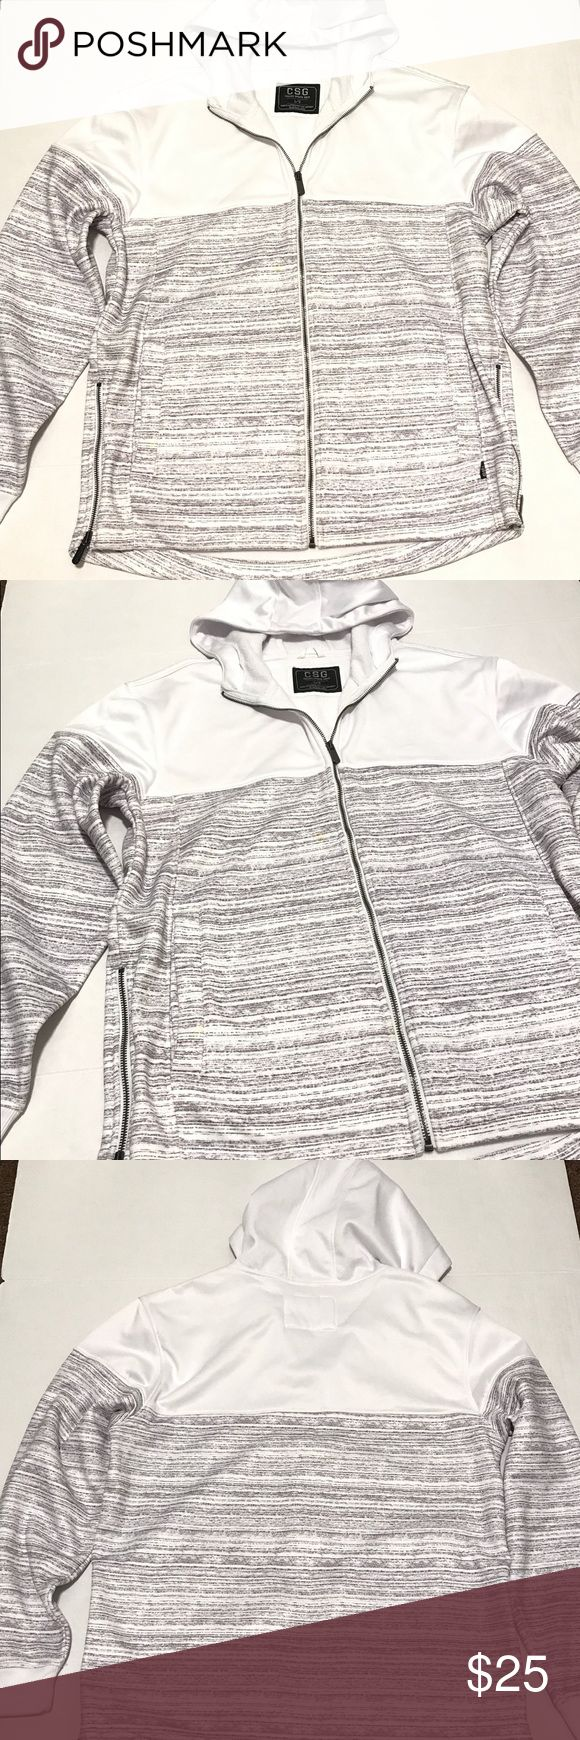 NEW CSG Champs Sports Gear zip up hoodie Sz LARGE New champs sports gear hooded zip up sweater size large. Has zippers on both sides and pocket for phone or MP3 player. It is missing the string for the hood. Material: 100% polyester champs sports gear Sweaters Zip Up